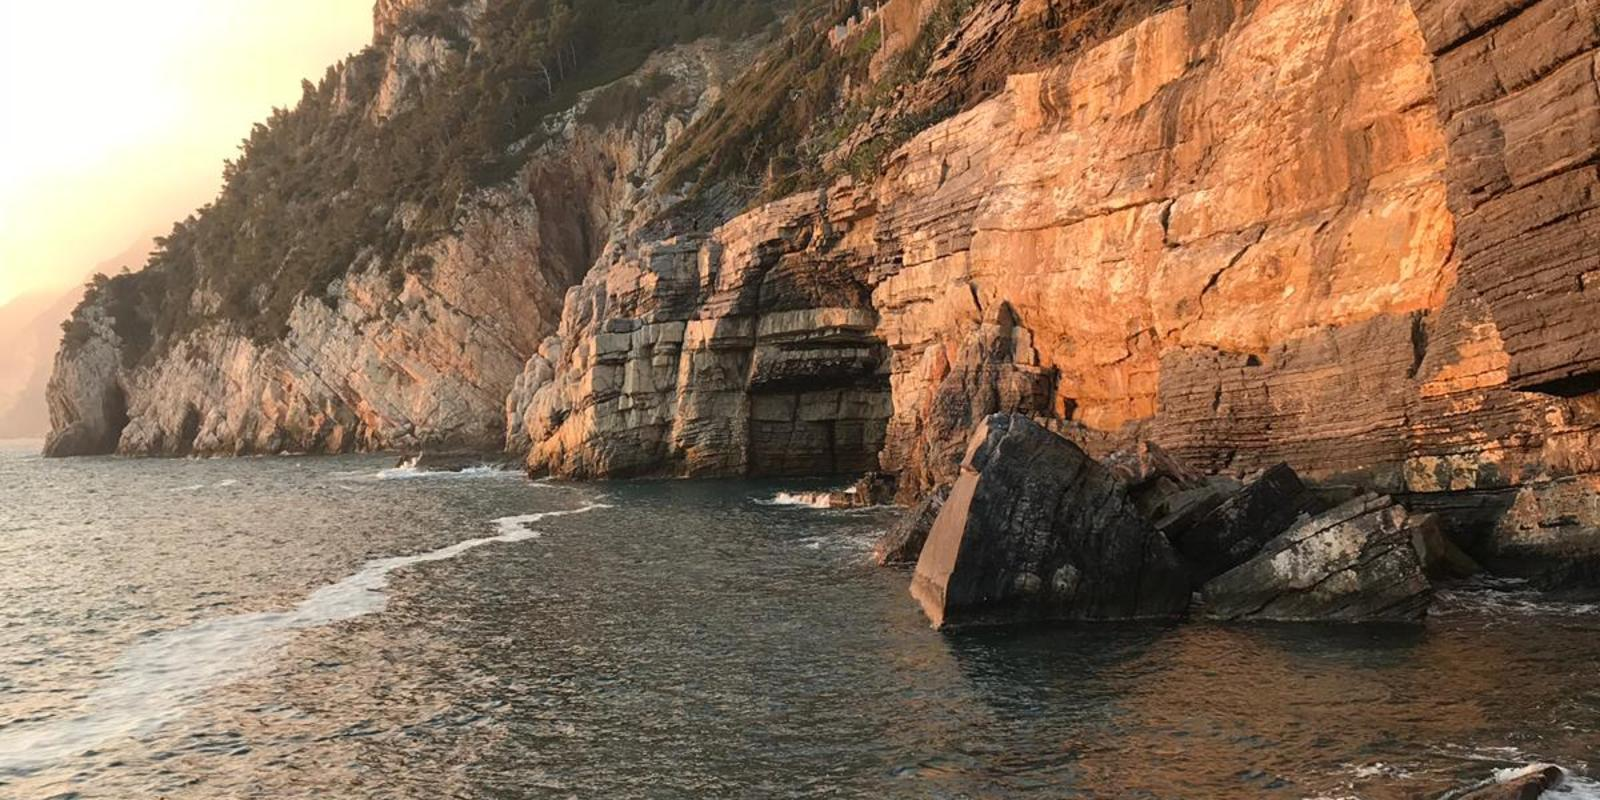 Walking with LA BEFANA for the Gulf of Poets and the Cinque Terre